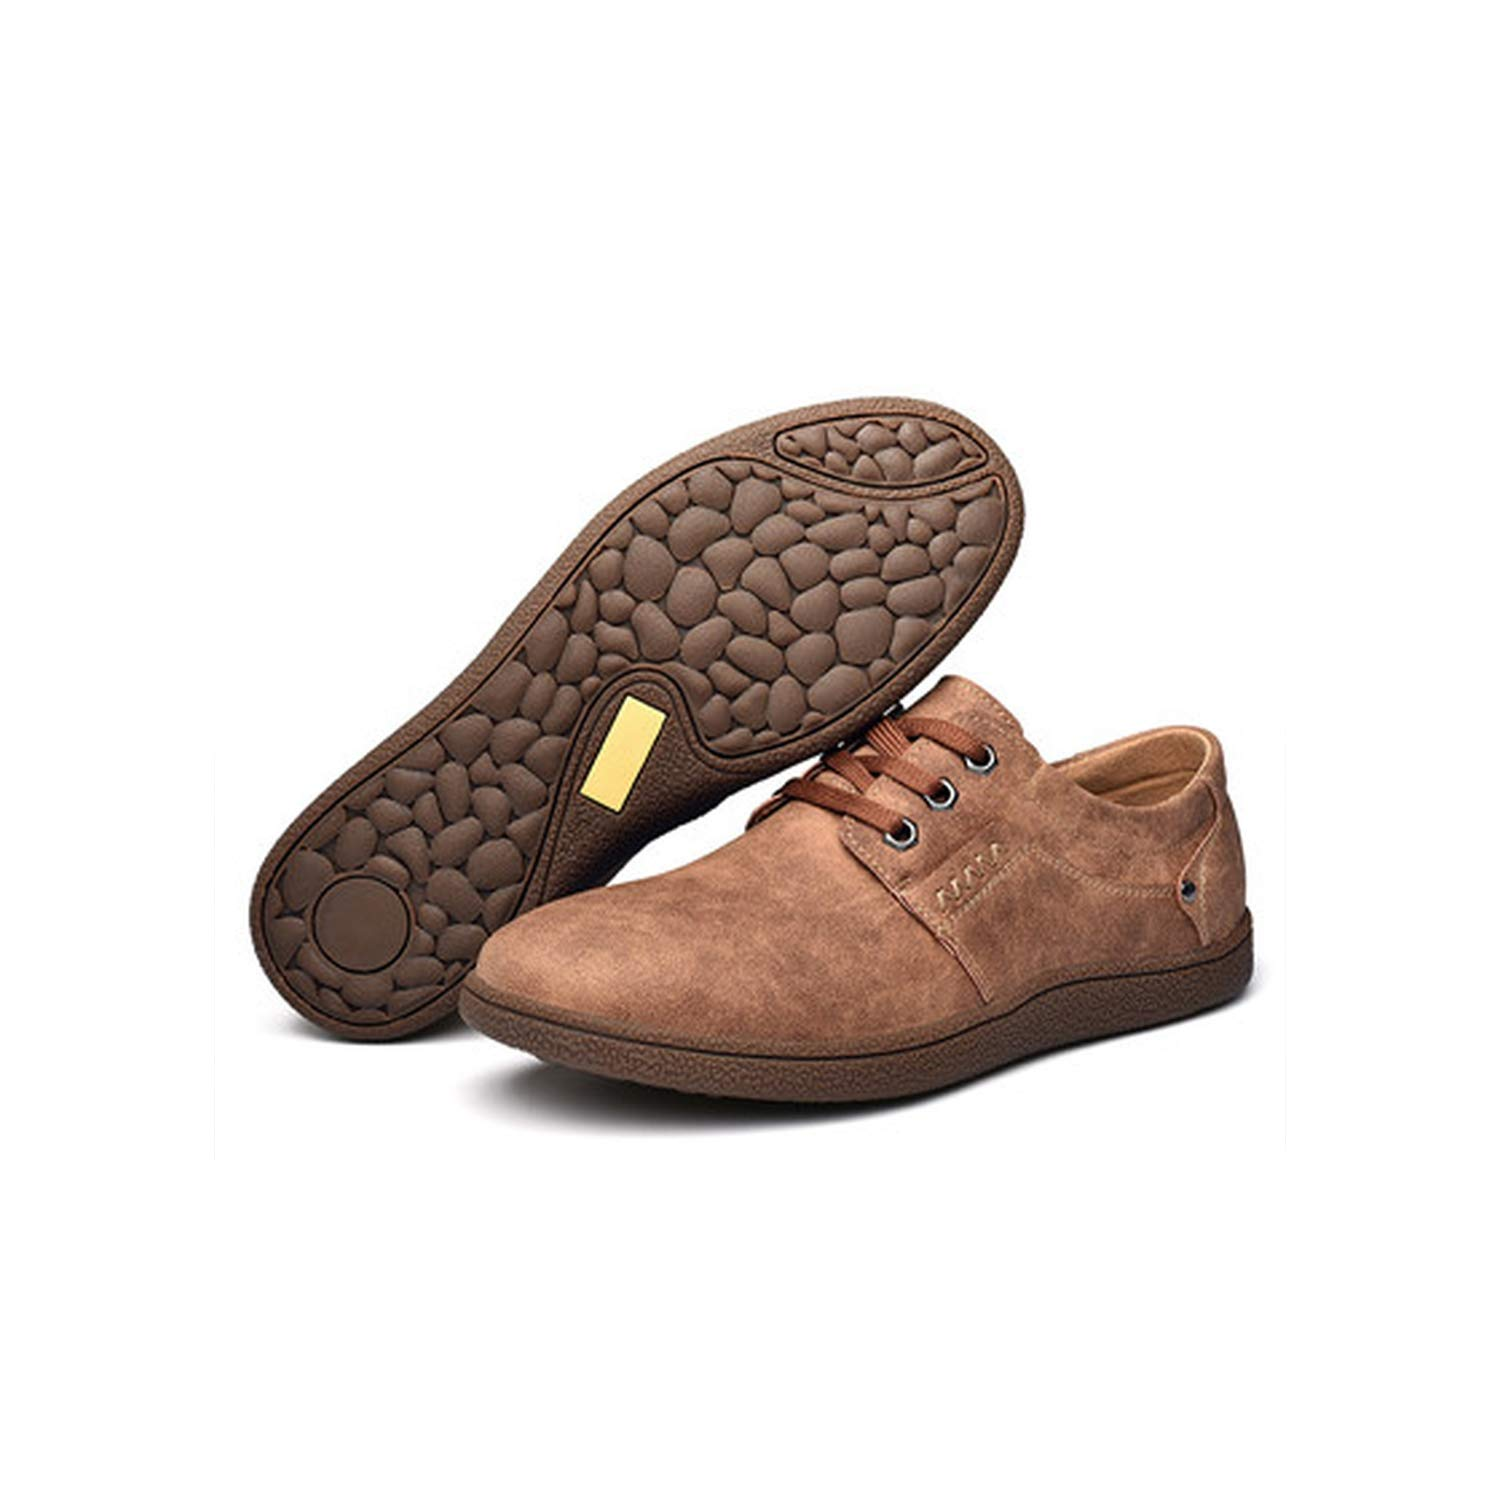 Red Brown Casual Cross-Border Explosion shoes Large Size Men shoes